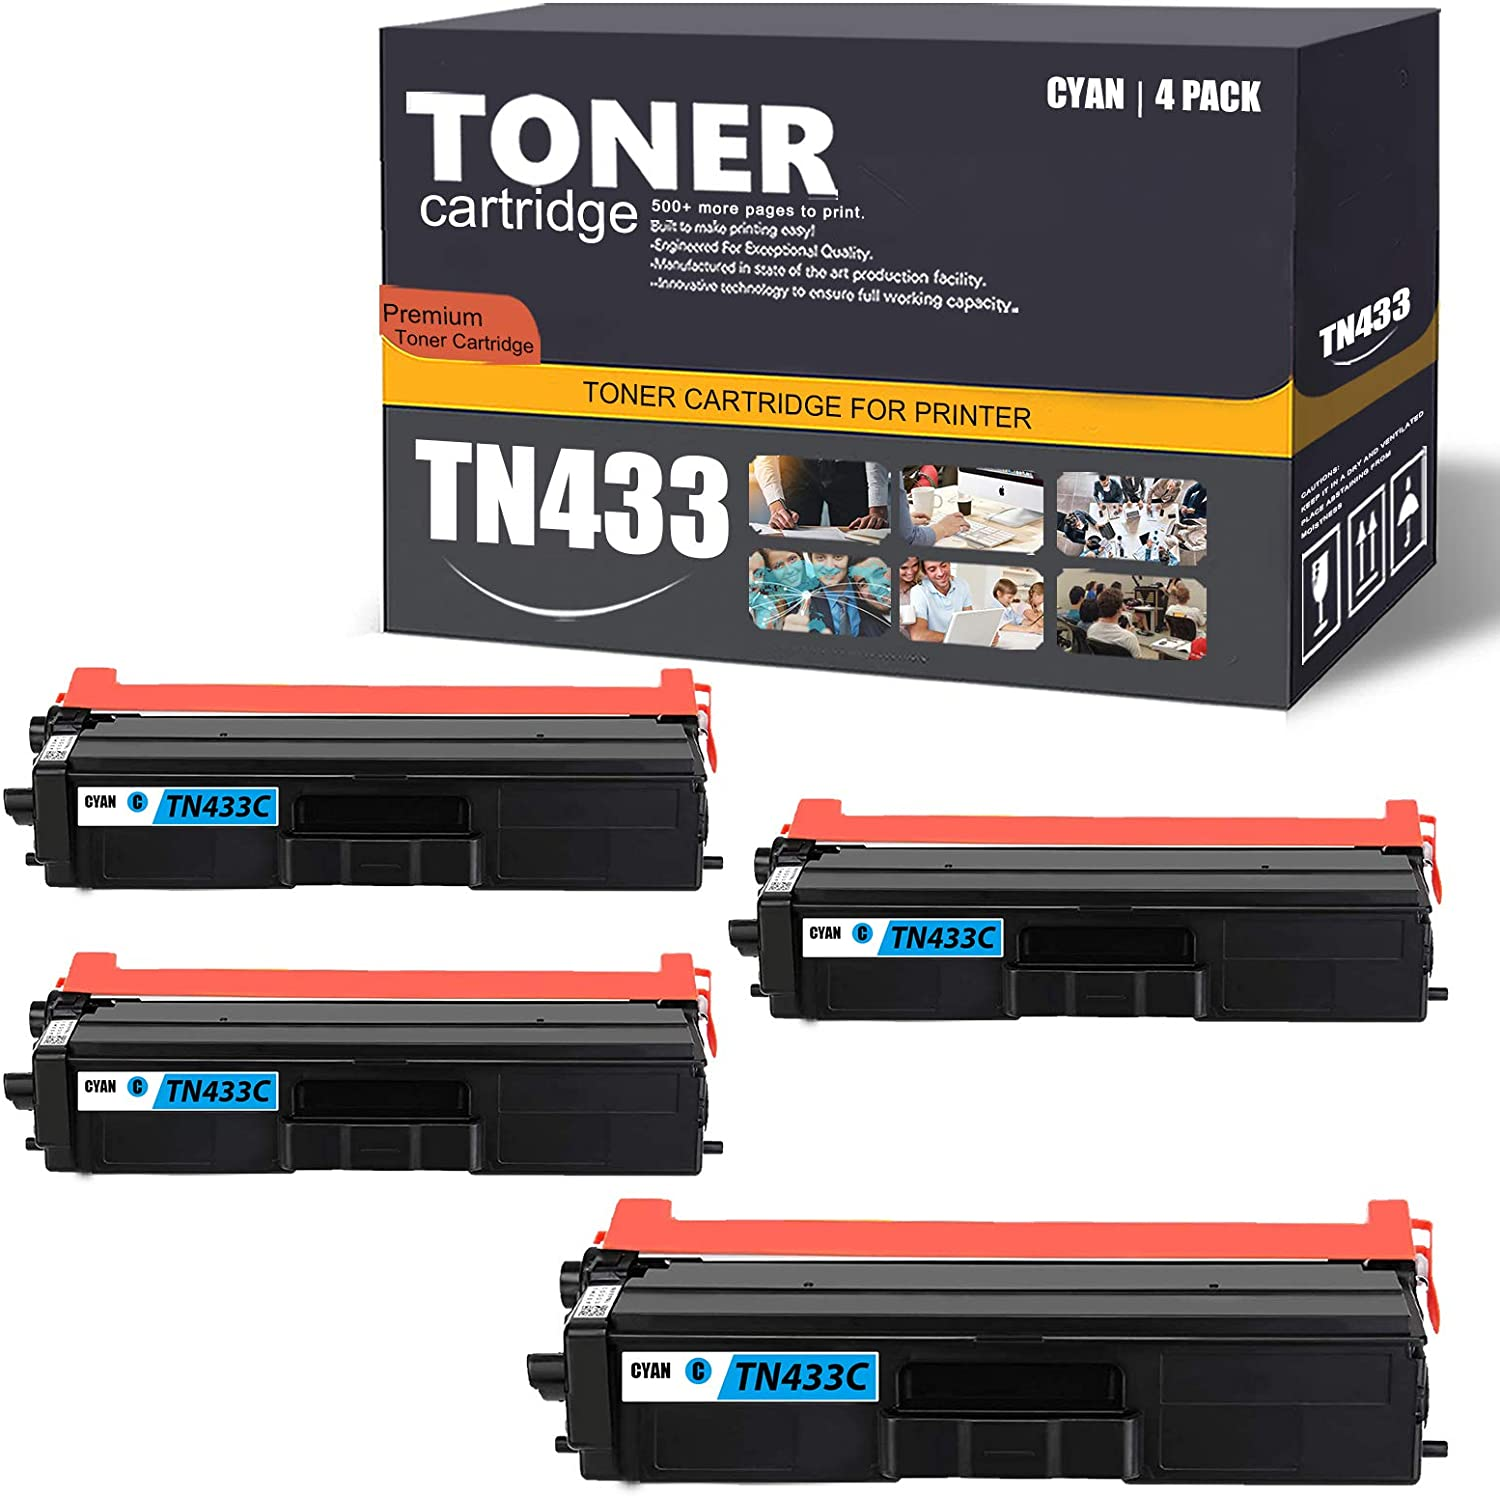 TN433C 4 Pack(Cyan) Compatible TN433 High Yield Toner Cartridge Replacement for Brother DCP-L8410CDW HL-L9310CDWTT L8260CDW L8360CDW MFC-L9570CDWT L8610CDW L9570CDW Printer Toner Cartridge